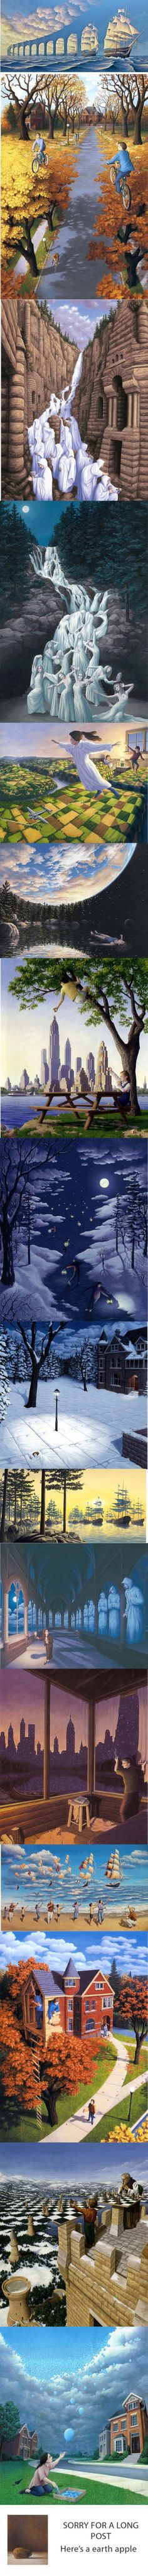 of Canadian artist's Rob Gonsalves artwork. Some of Canadian artist's Rob Gonsalves artwork. - of Canadian artist's Rob Gonsalves artwork. Drawn Art, Illusion Art, Illusion Paintings, Illusion Pics, Illusion Drawings, Wow Art, Canadian Artists, Art Plastique, Optical Illusions